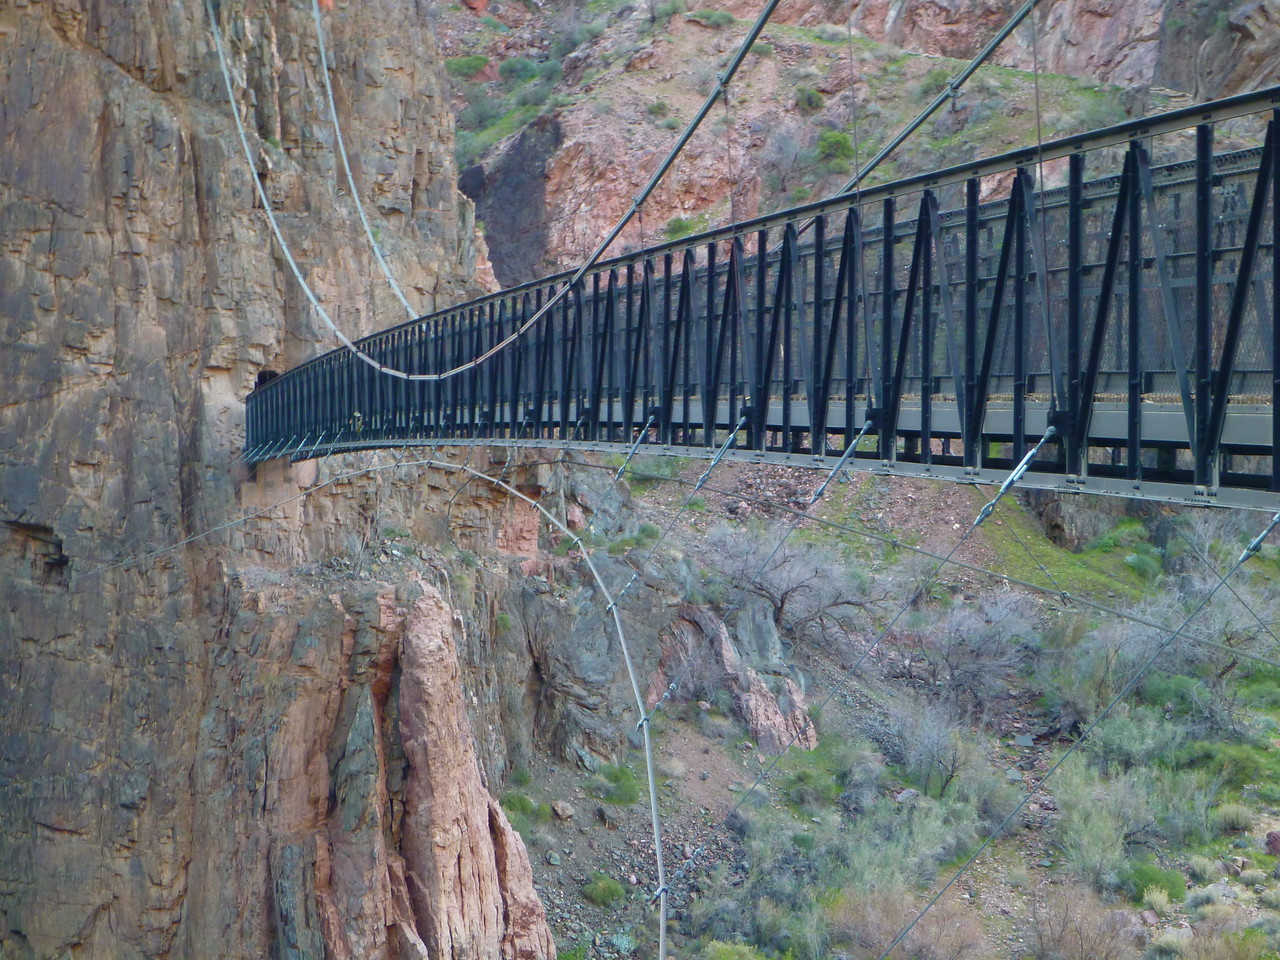 Day 6 - Hiking back to the South Rim via the South Kaibab Trail. The Black Bridge.